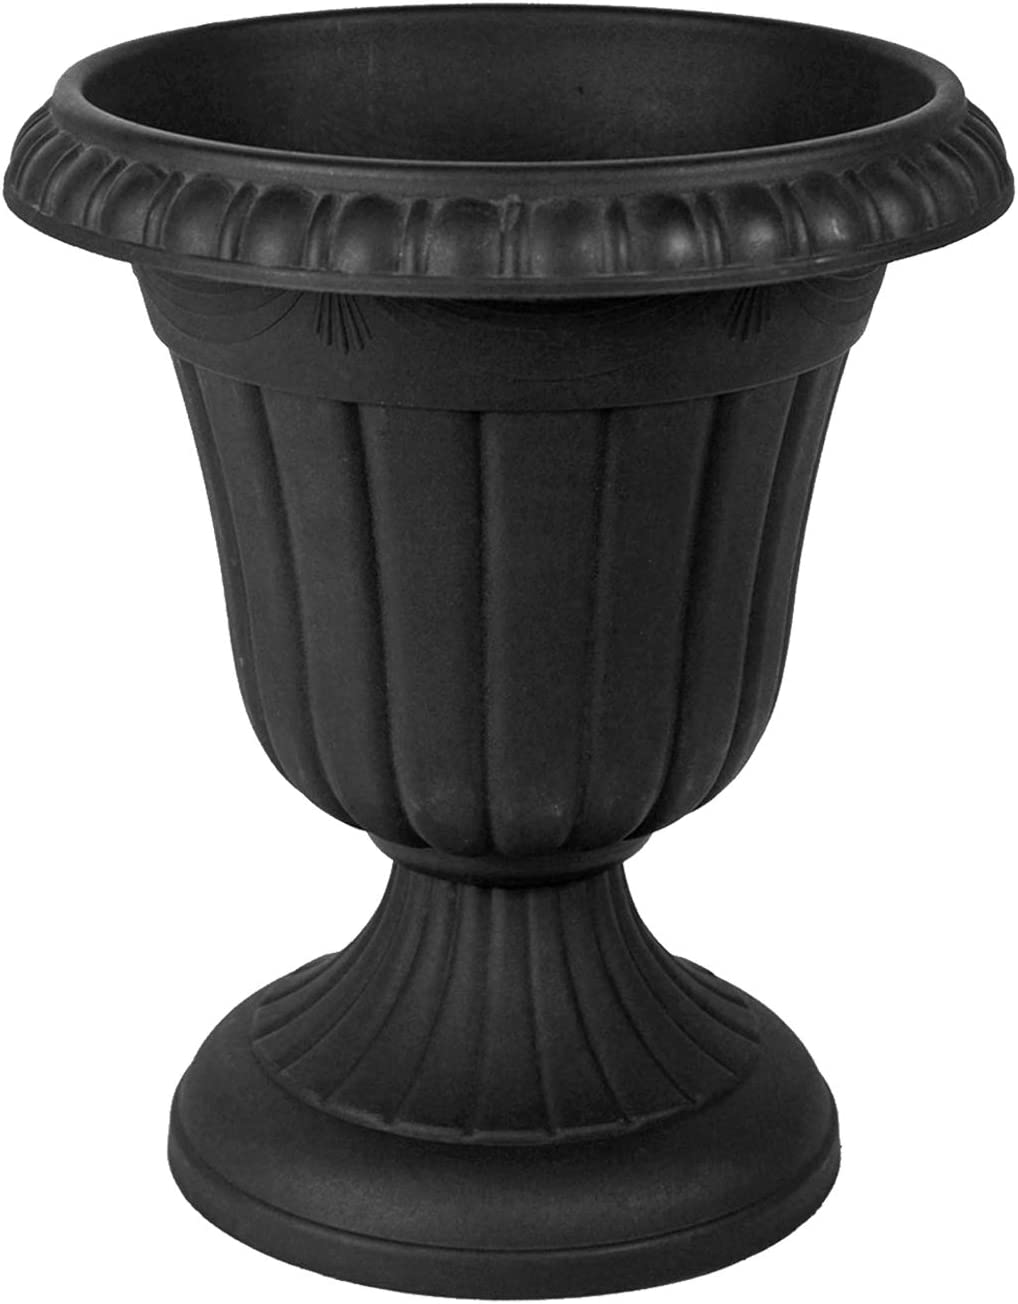 Arcadia Garden Products PL20BK Indoor/Outdoor, 10